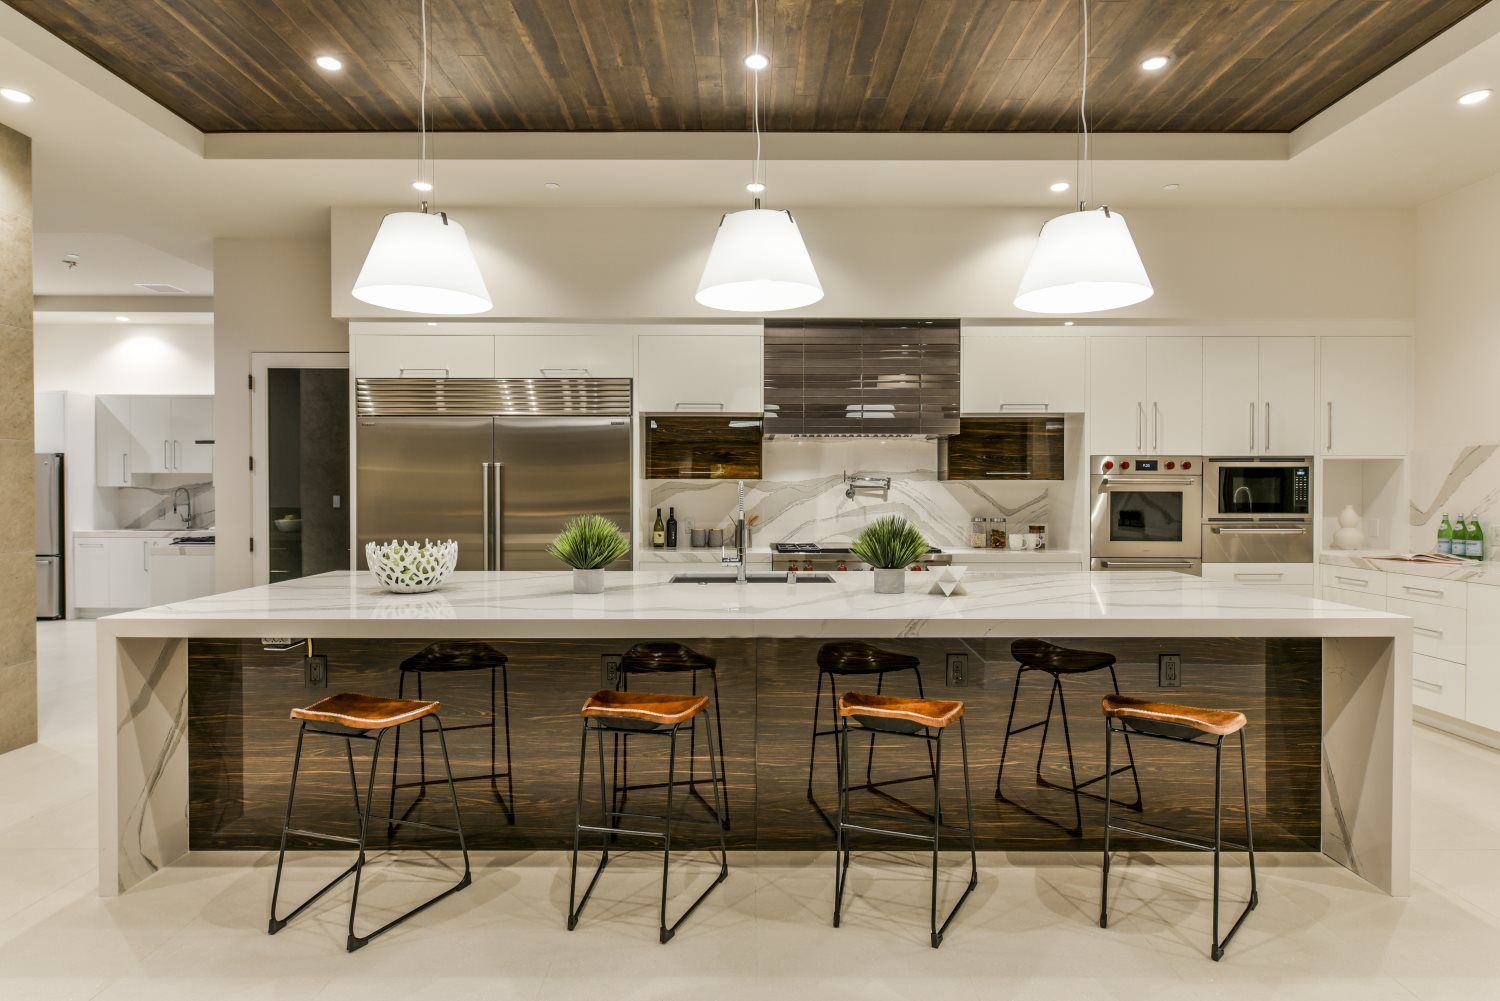 Home - Expert, Certified Home Stager and Redesigner. Home Staging ...